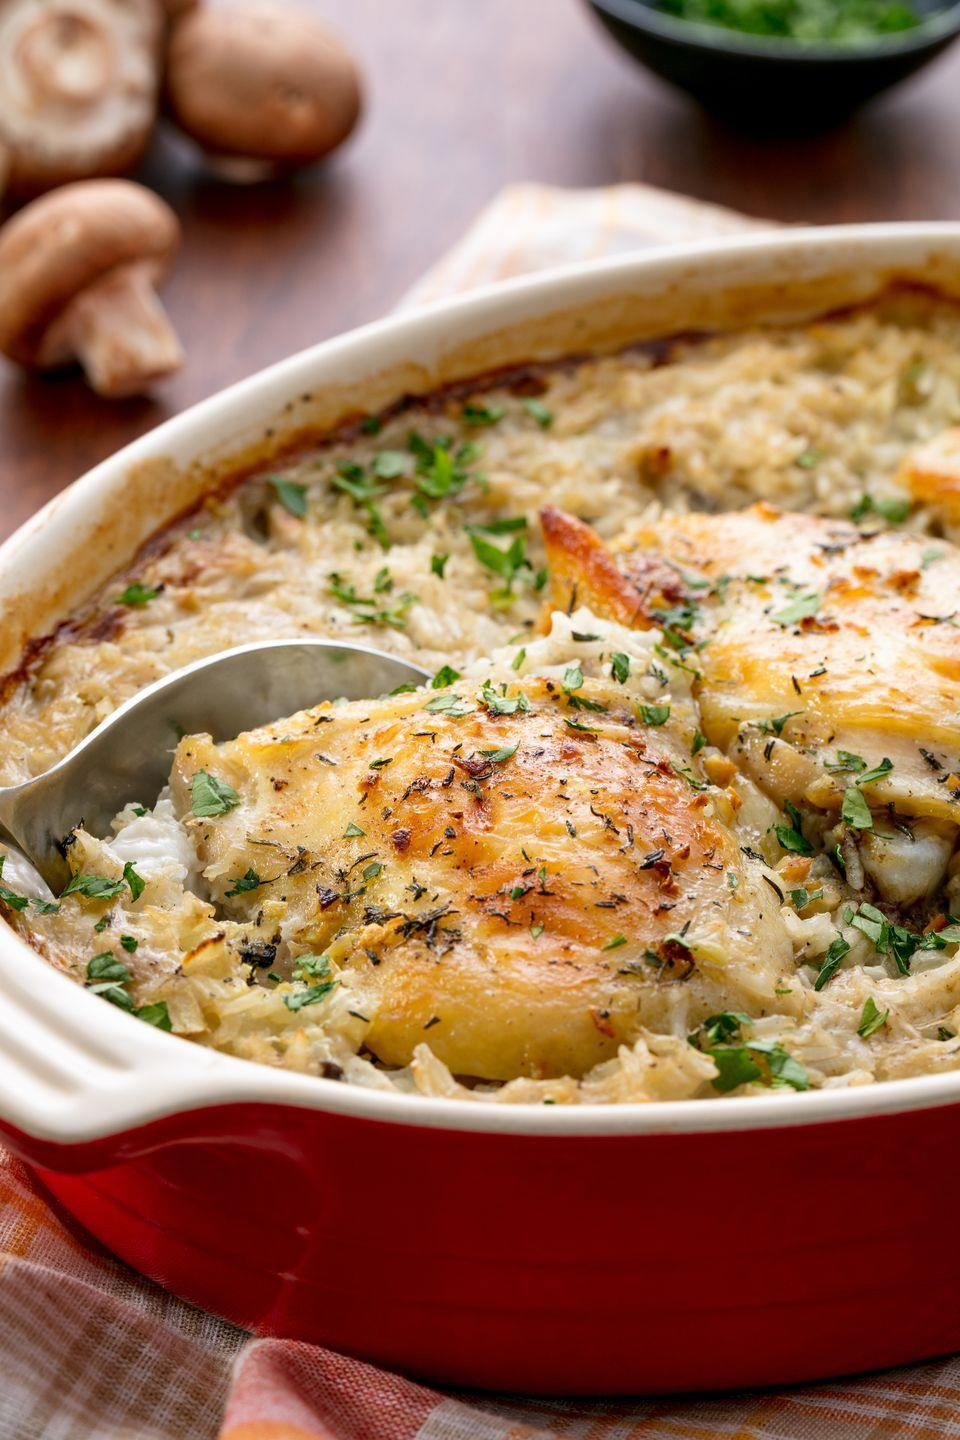 "<p>A feel-good meal.</p><p>Get the recipe from <a href=""https://www.delish.com/cooking/recipe-ideas/recipes/a54936/easy-chicken-rice-casserole-recipe/"" rel=""nofollow noopener"" target=""_blank"" data-ylk=""slk:Delish"" class=""link rapid-noclick-resp"">Delish</a>.</p>"